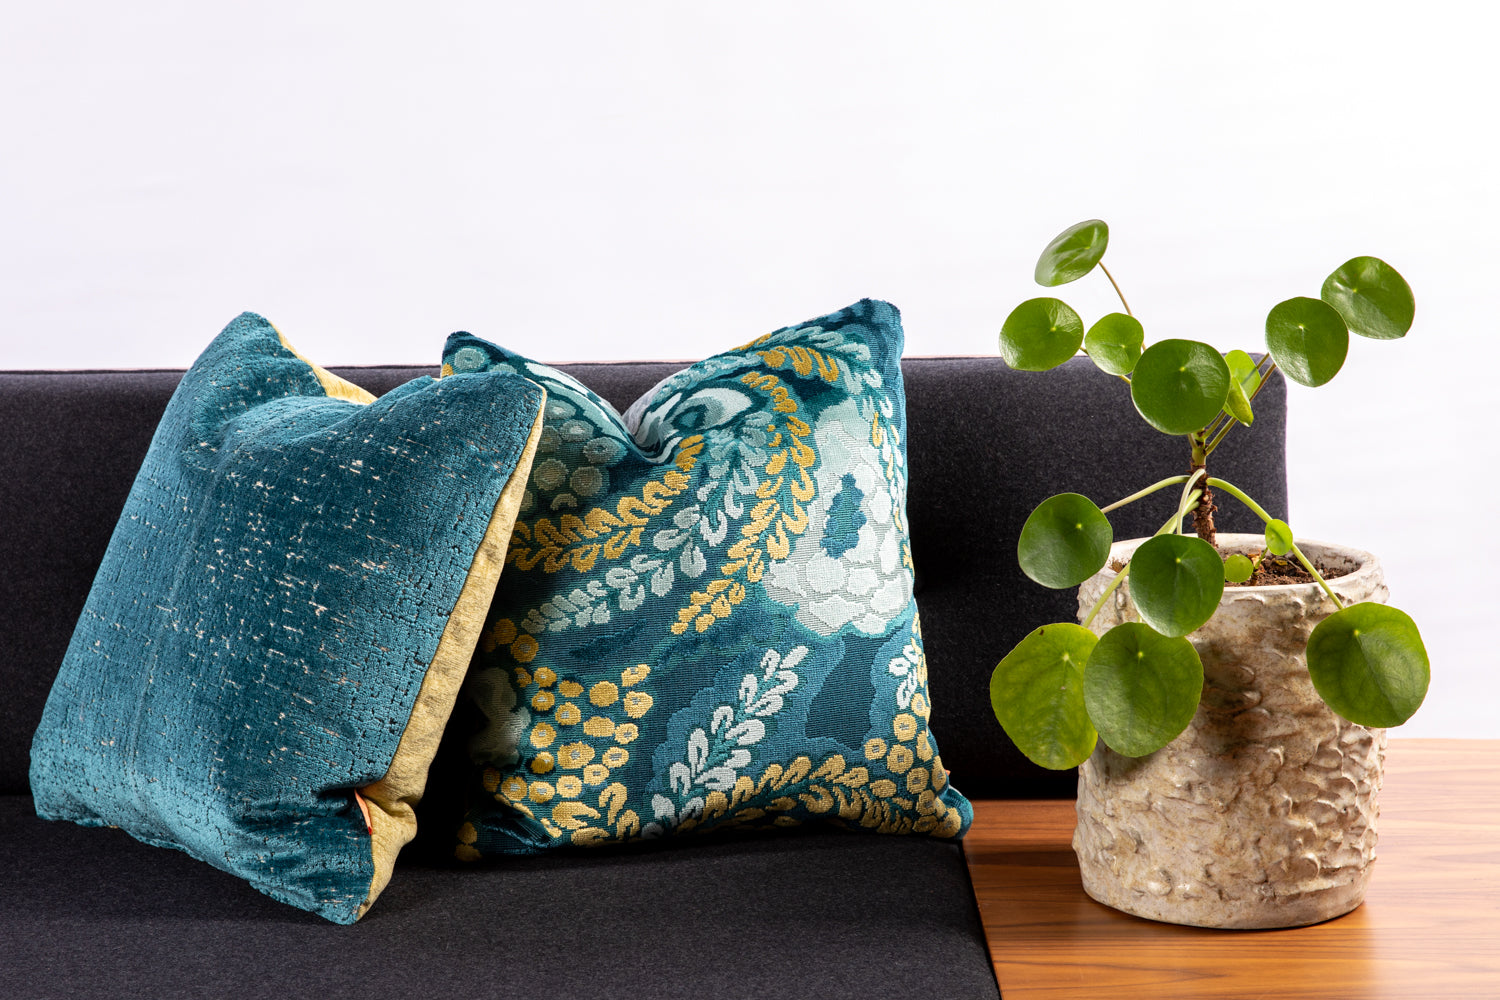 ffabb toss pillows, RADG & Maxwell fabrics, floral, cut velvet